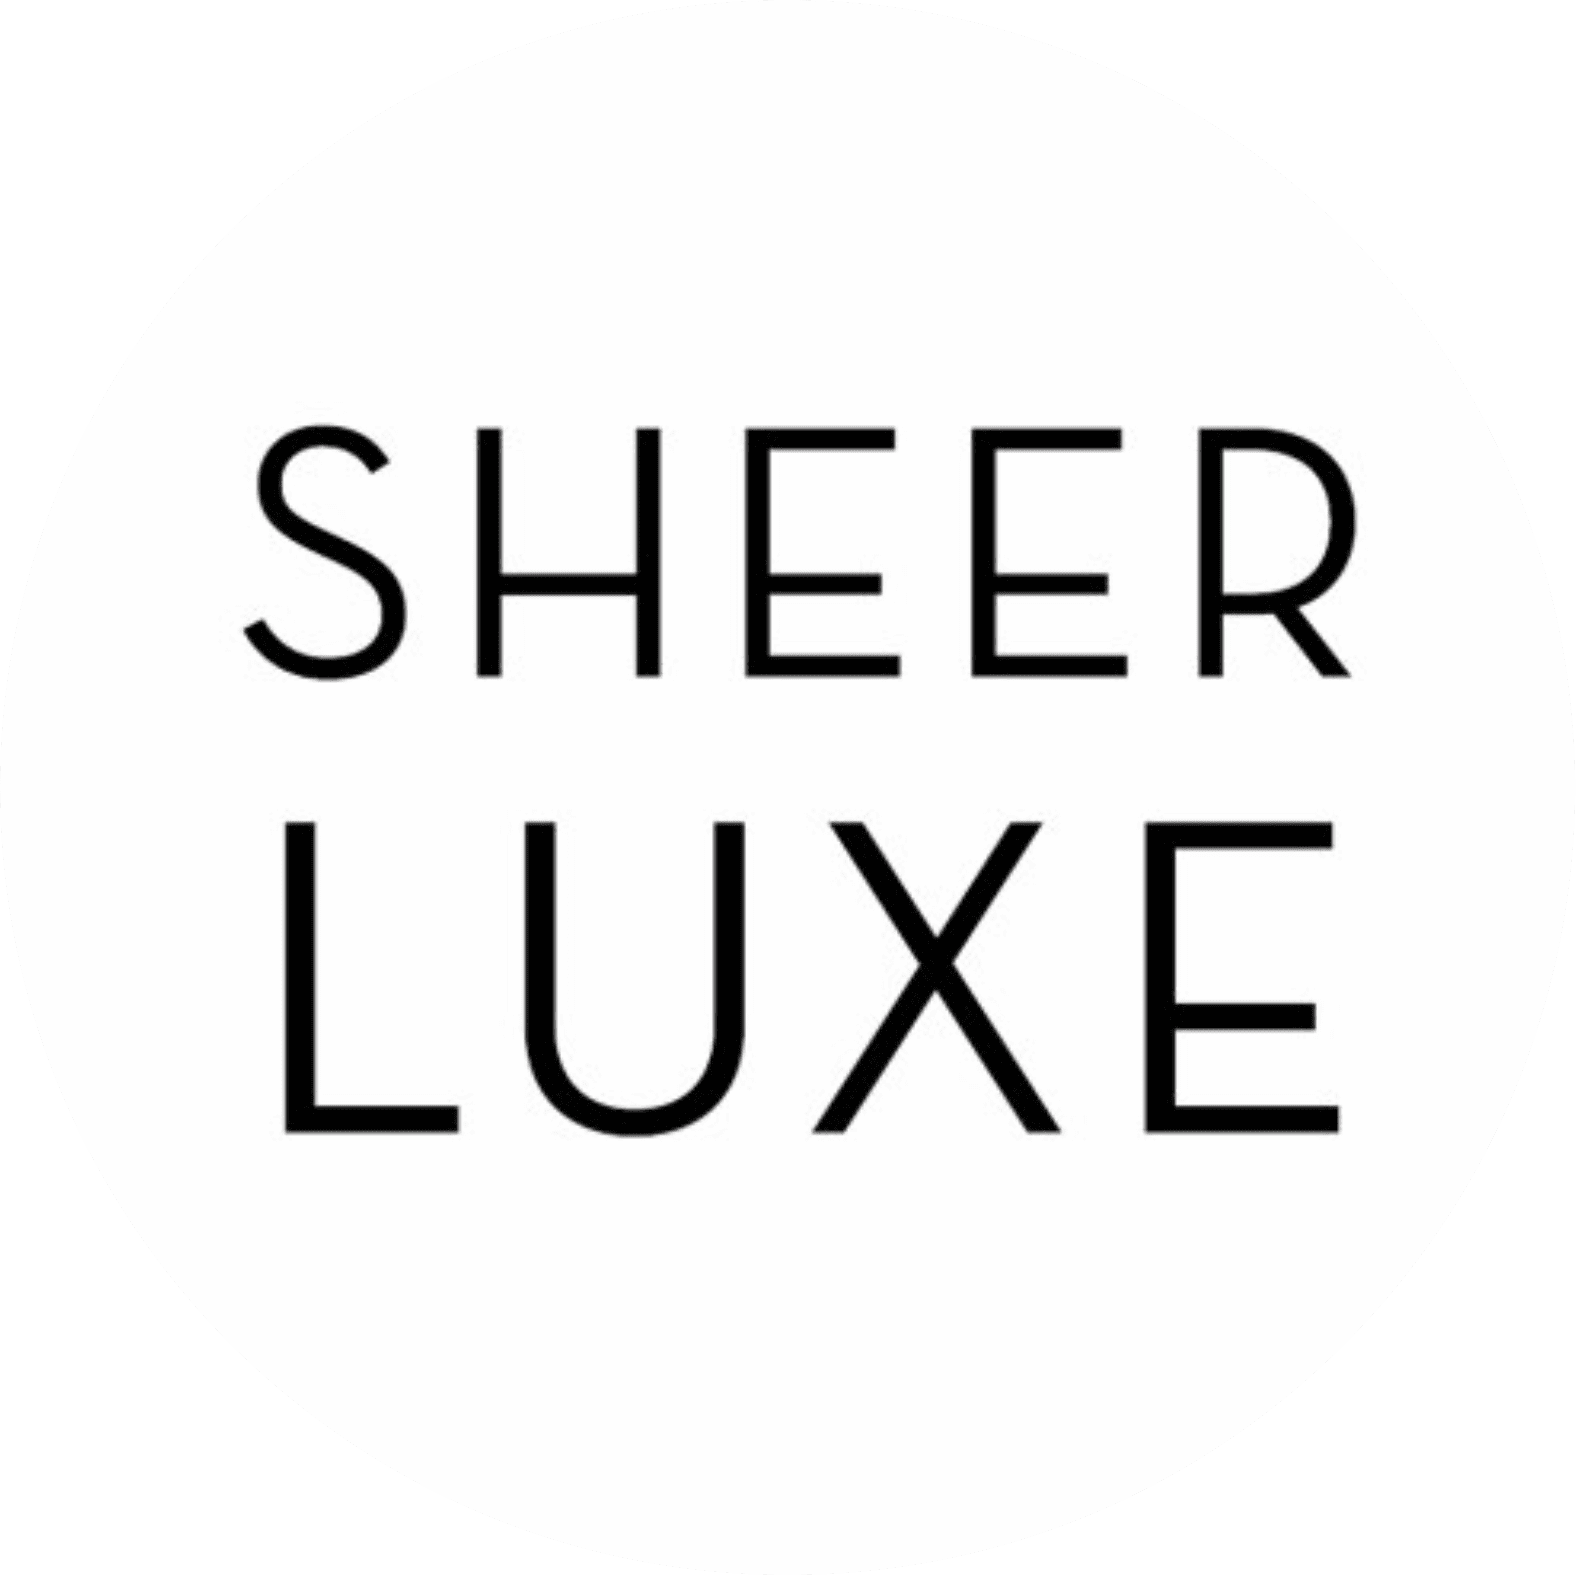 Fetured on Sheer Luxe badge